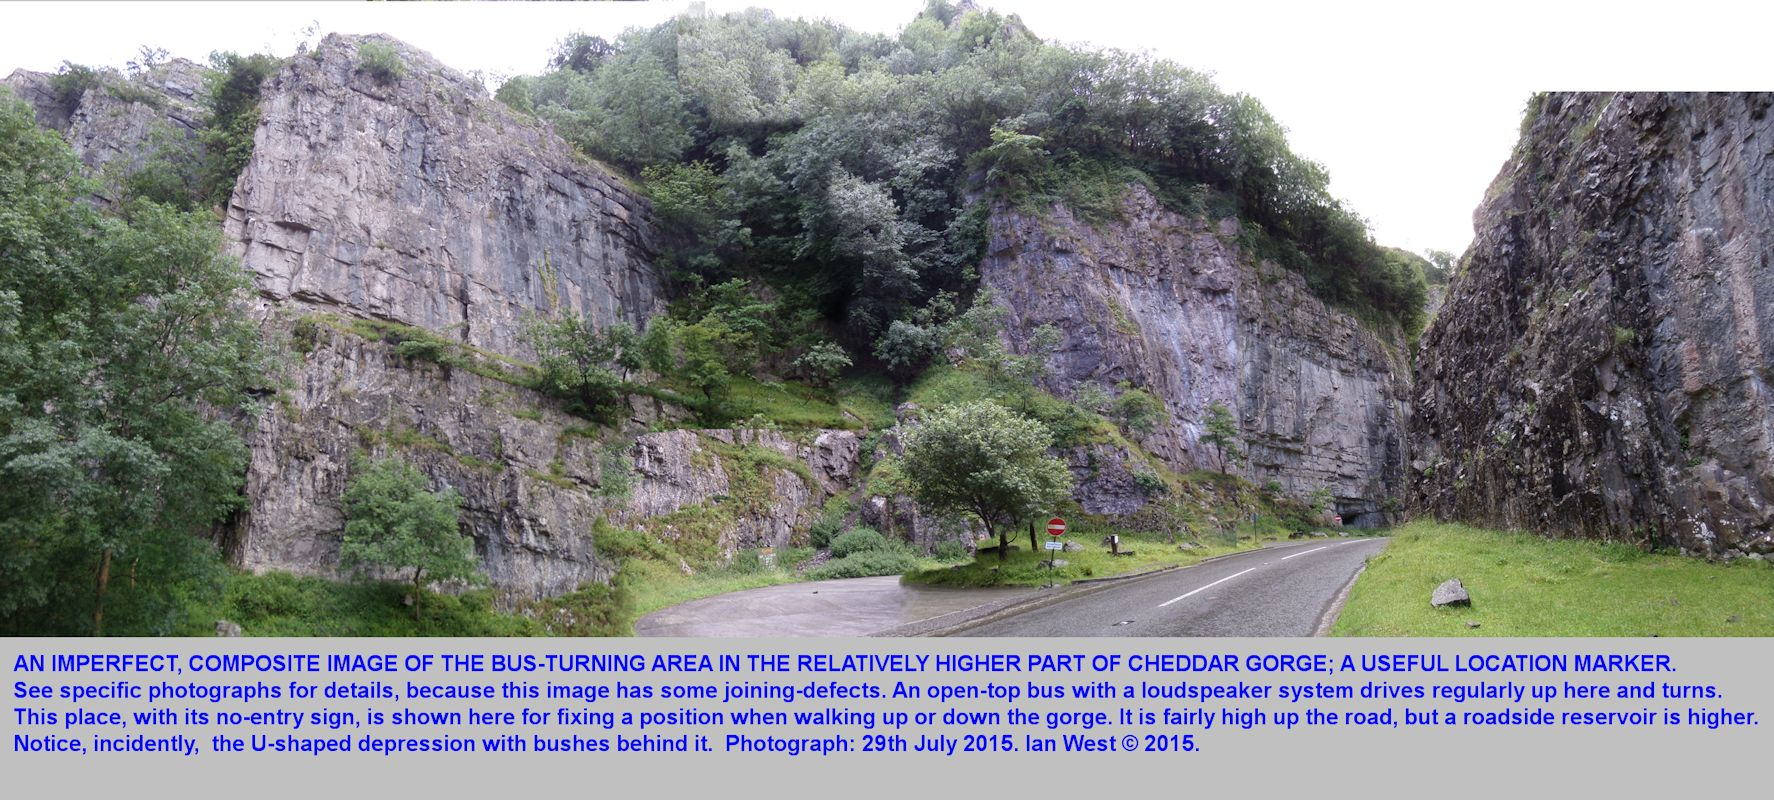 A composite image for location purposes, the bus turning area, up Cheddar Gorge, Mendip Hills, Somerset, 29th July 2015